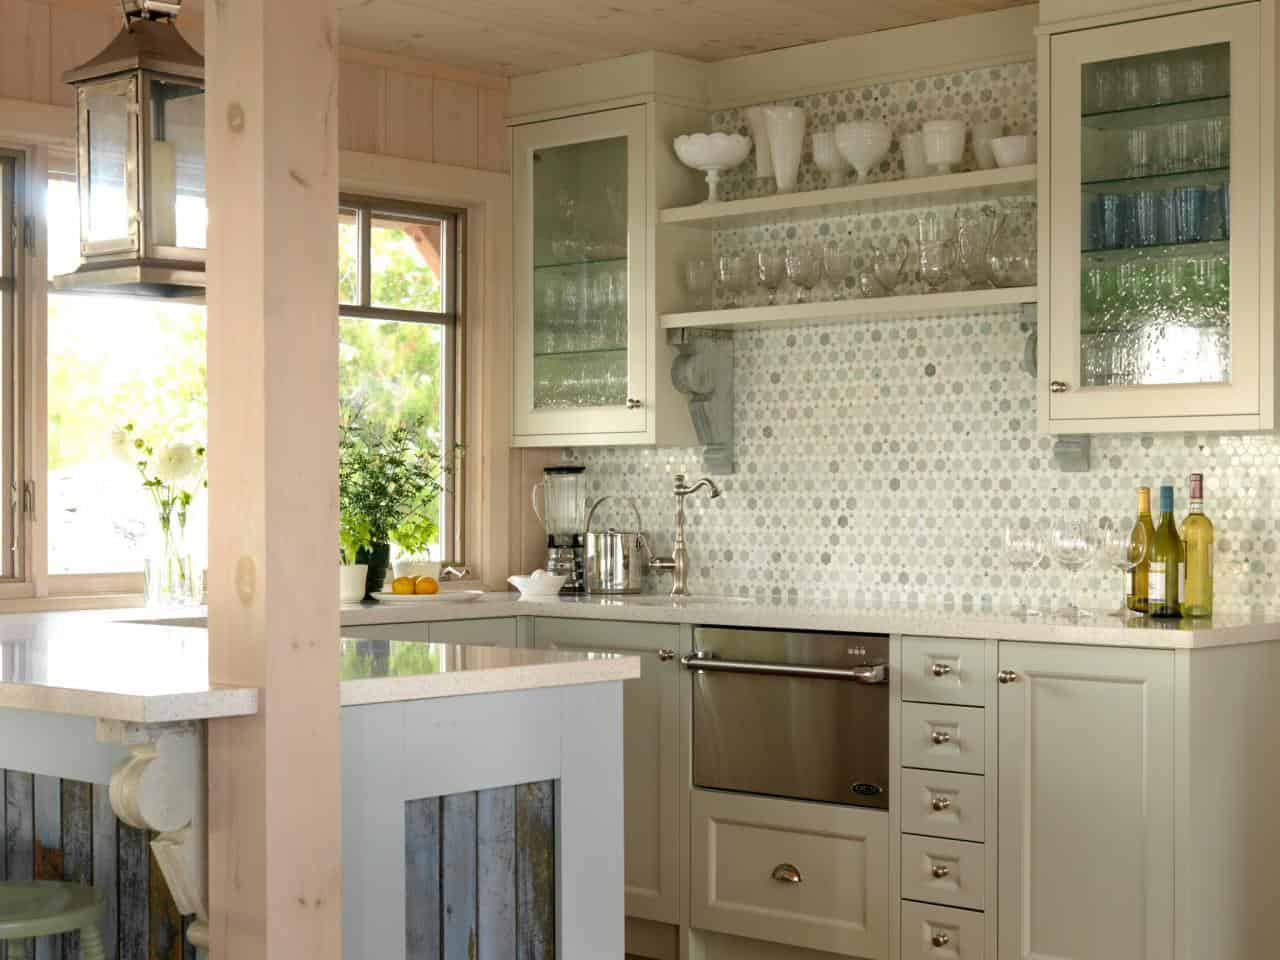 For kitchen cabinets Splashing Rain Glass Design To Show A Charming Rainfall For Home Interior Ideas